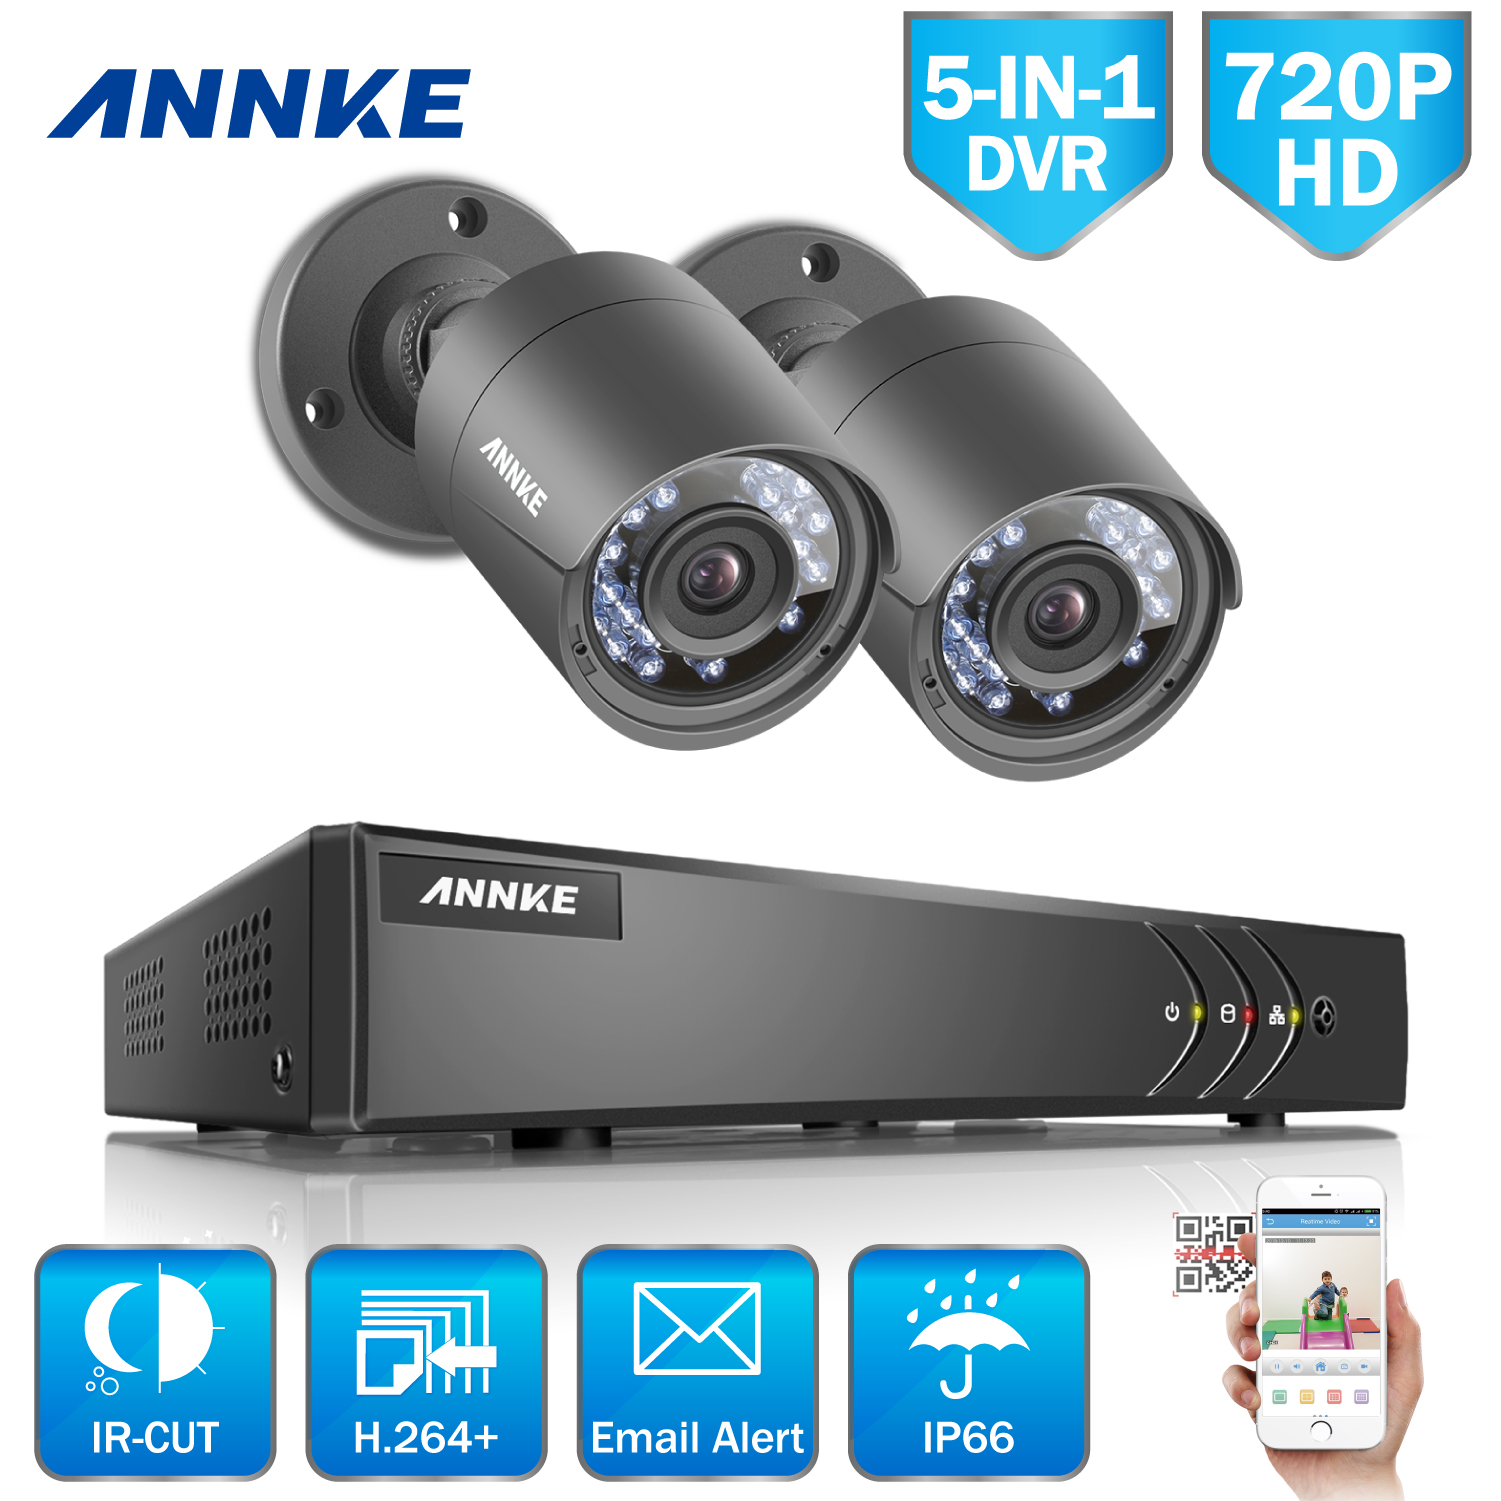 ANNKE 4CH HD 720P TVI 1080N DVR 2pcs 1500TVL Outdoor IR Day Night Security Camera Surveillance System 1TB HDD DK zosi 1080p 8ch tvi dvr with 8x 1080p hd outdoor home security video surveillance camera system 2tb hard drive white